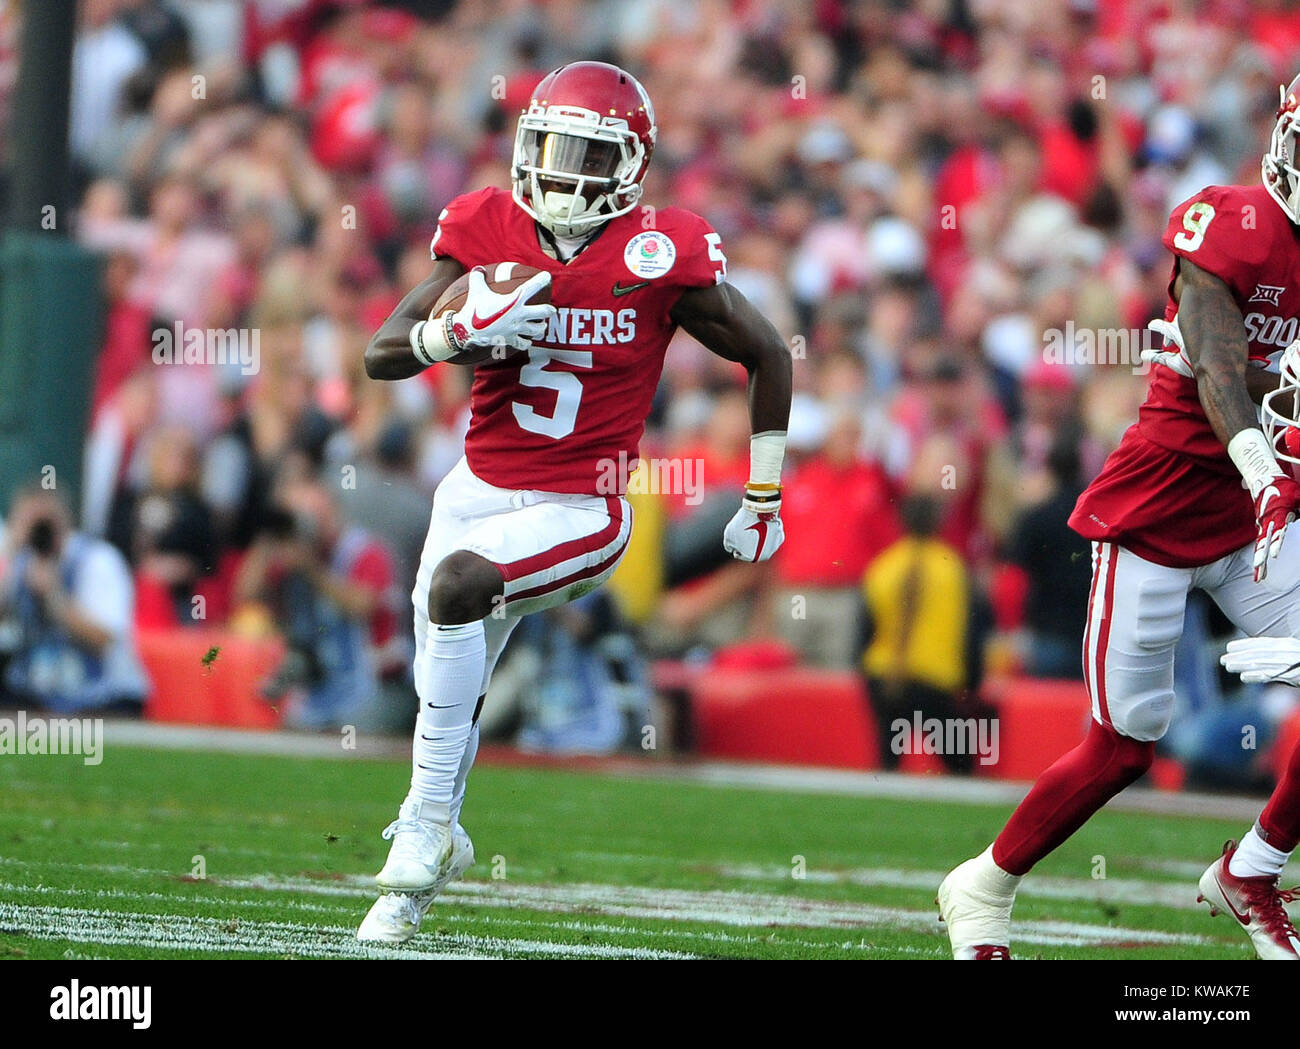 Pasadena, California, USA. 01st Jan, 2018. Oklahoma Sooners wide receiver Marquise Brown #5 during the 2018 Rose Stock Photo